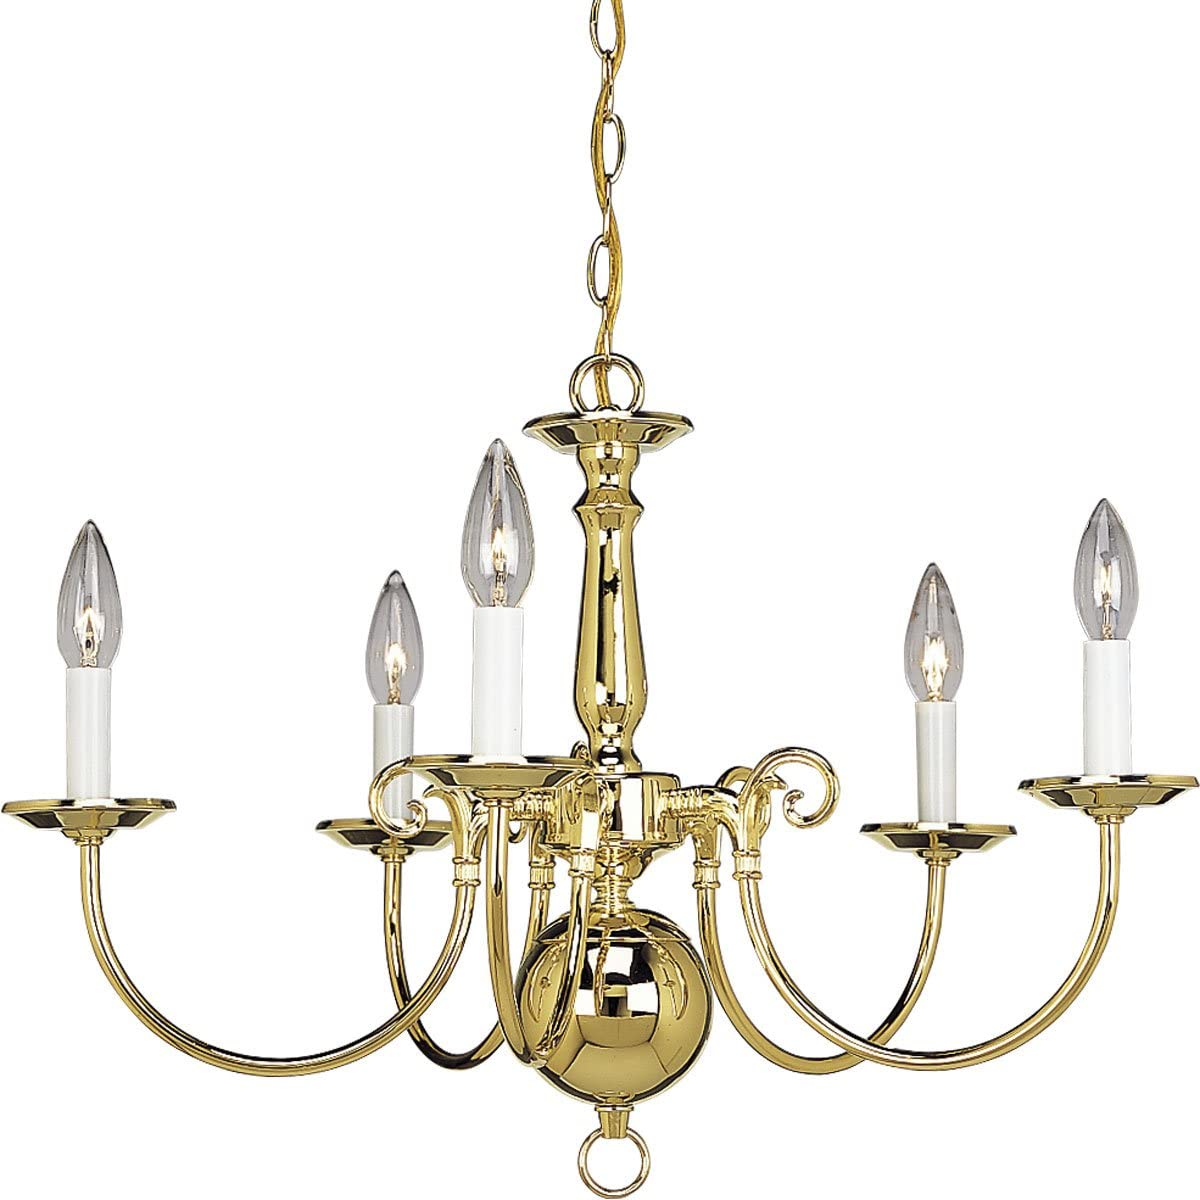 Progress Lighting P4346-10 5-Light Americana Chandelier with Delicate Arms and Decorative Center Column, Polished Brass